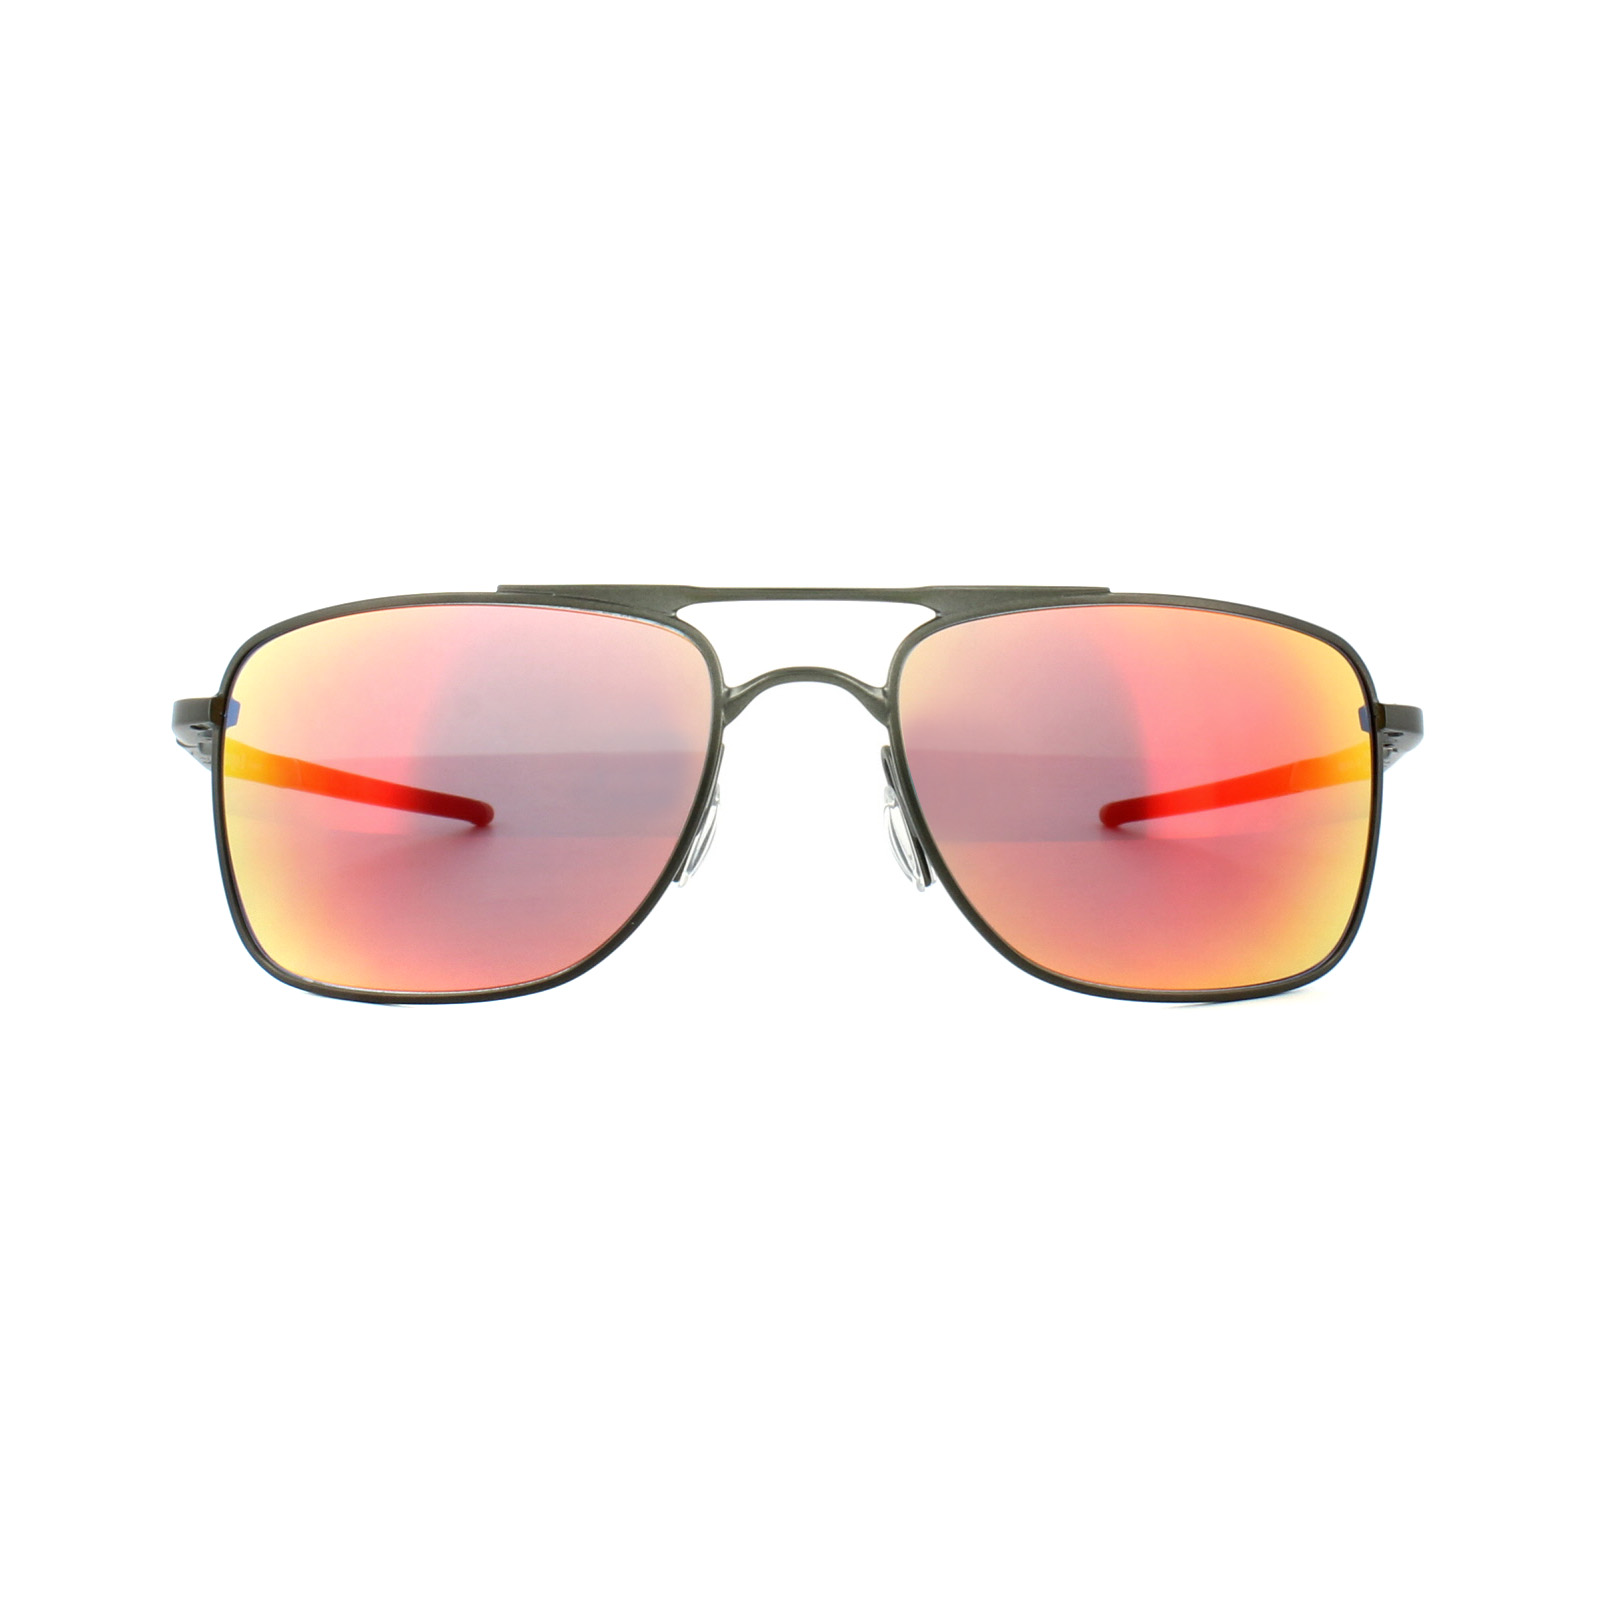 a3d6a37c27d Cheap Oakley Gauge 8 L Sunglasses - Discounted Sunglasses